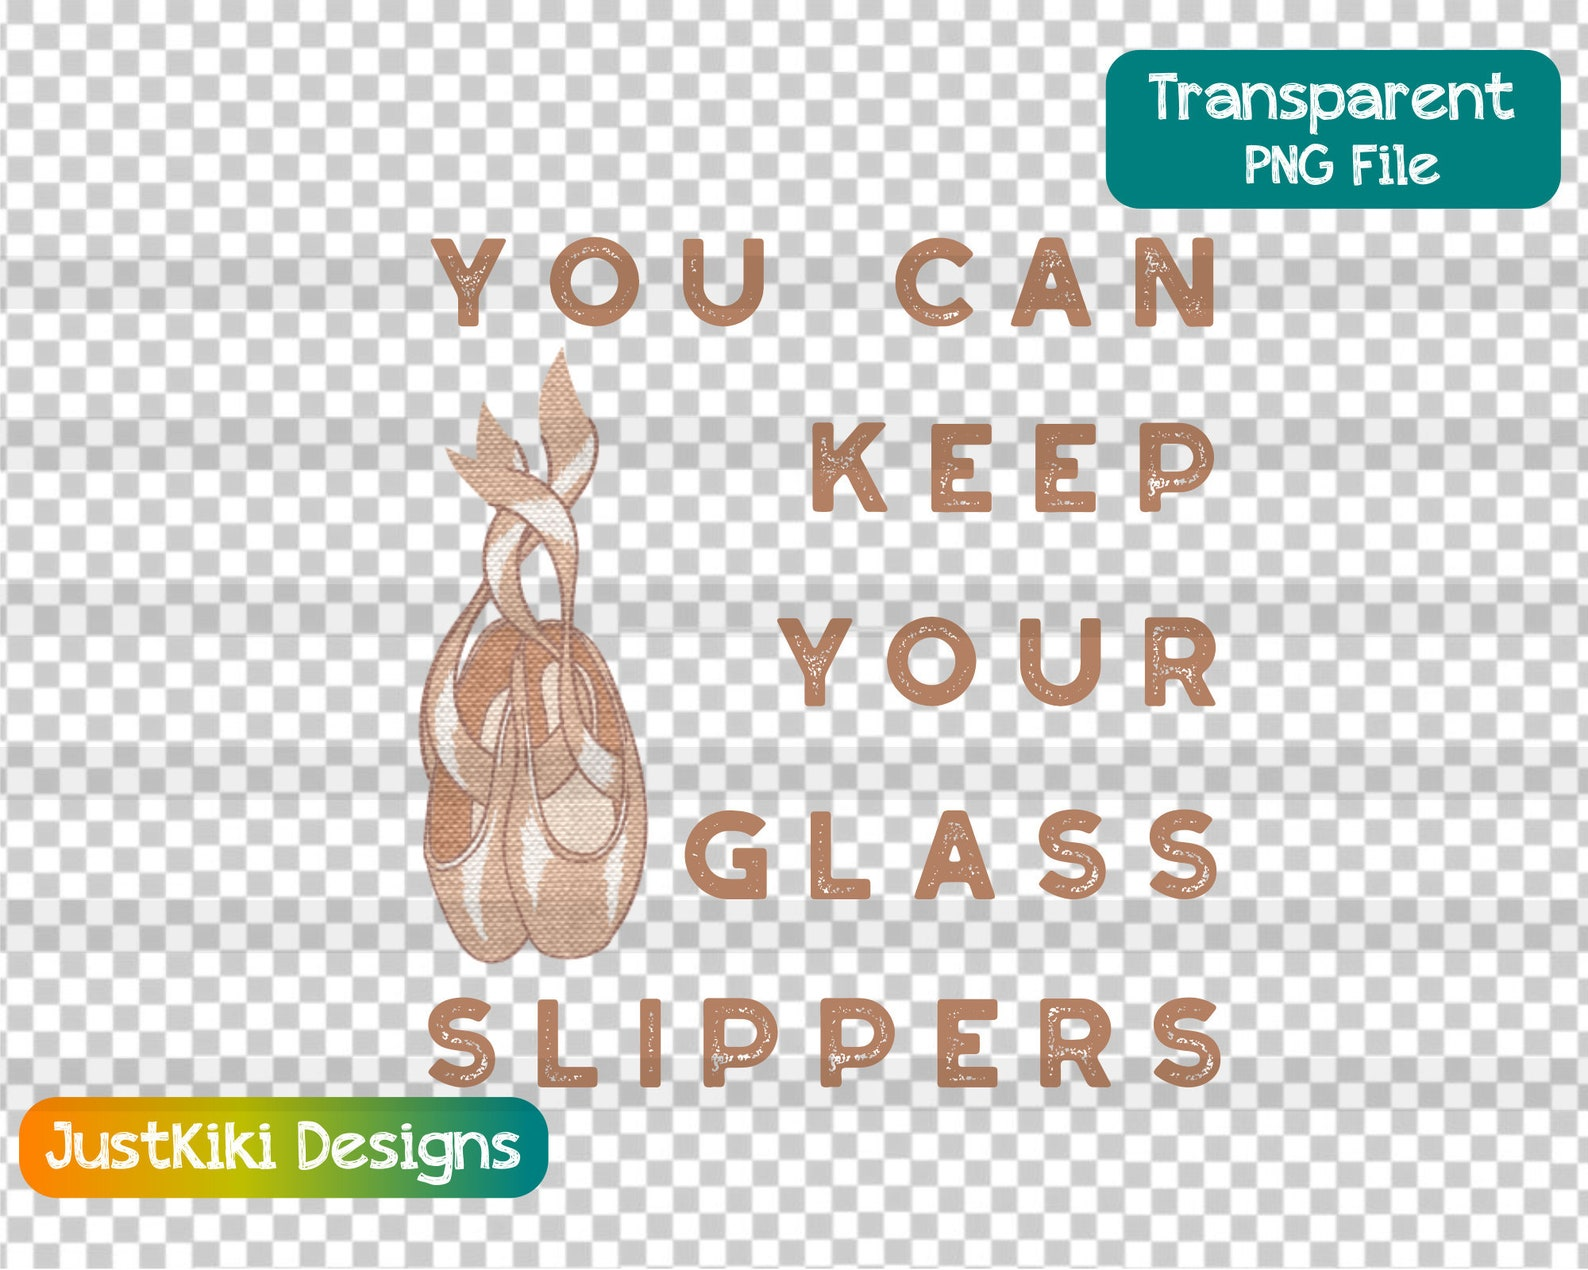 ballet dance svg - you can keep your glass slippers png - pointe shoes clipart - party invitation favors